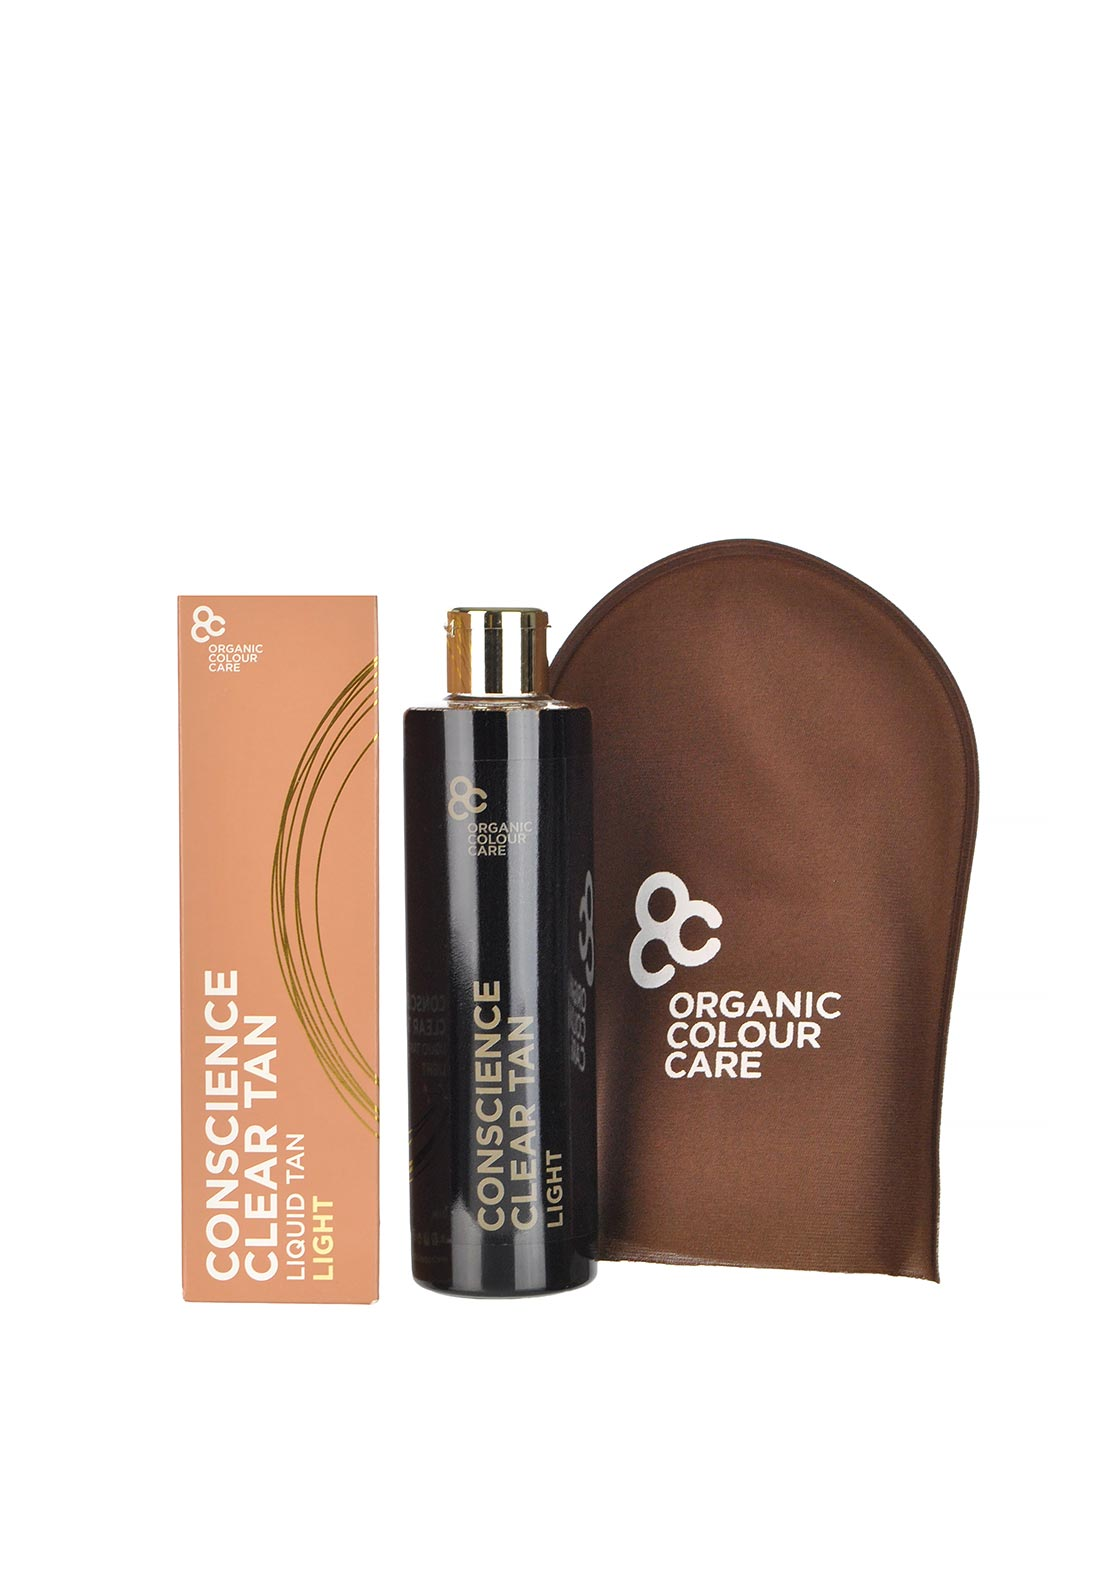 Organic Colour Care Conscience Clear Tan, Light